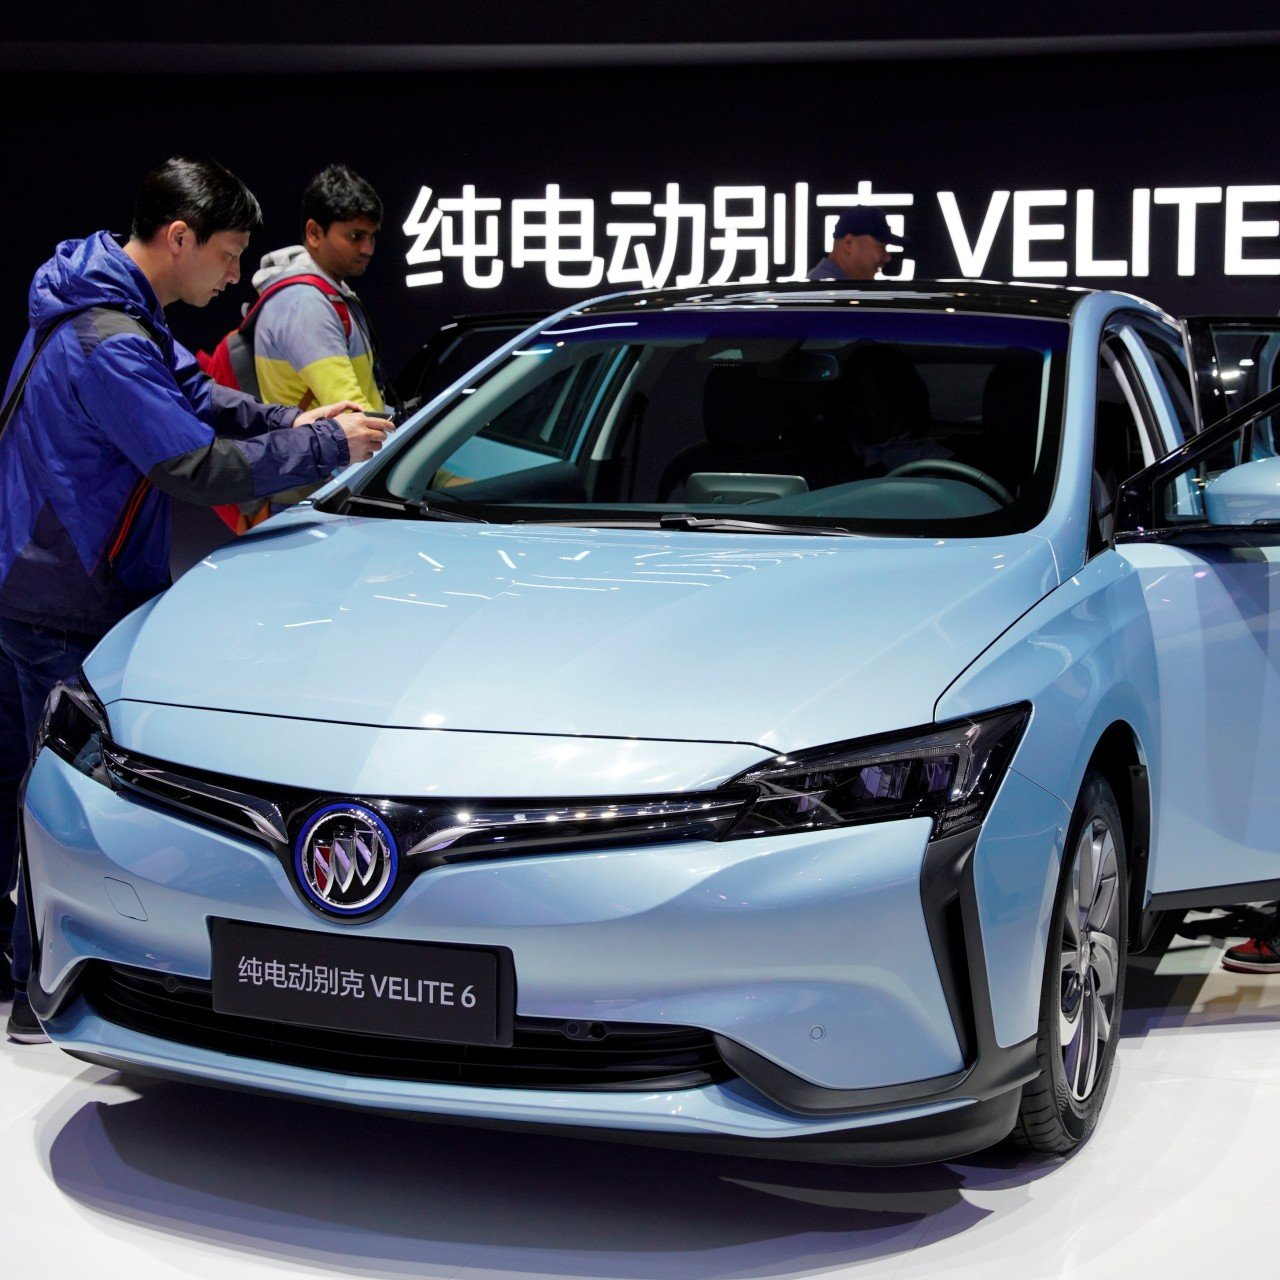 China's electric car market is growing twice as fast as the